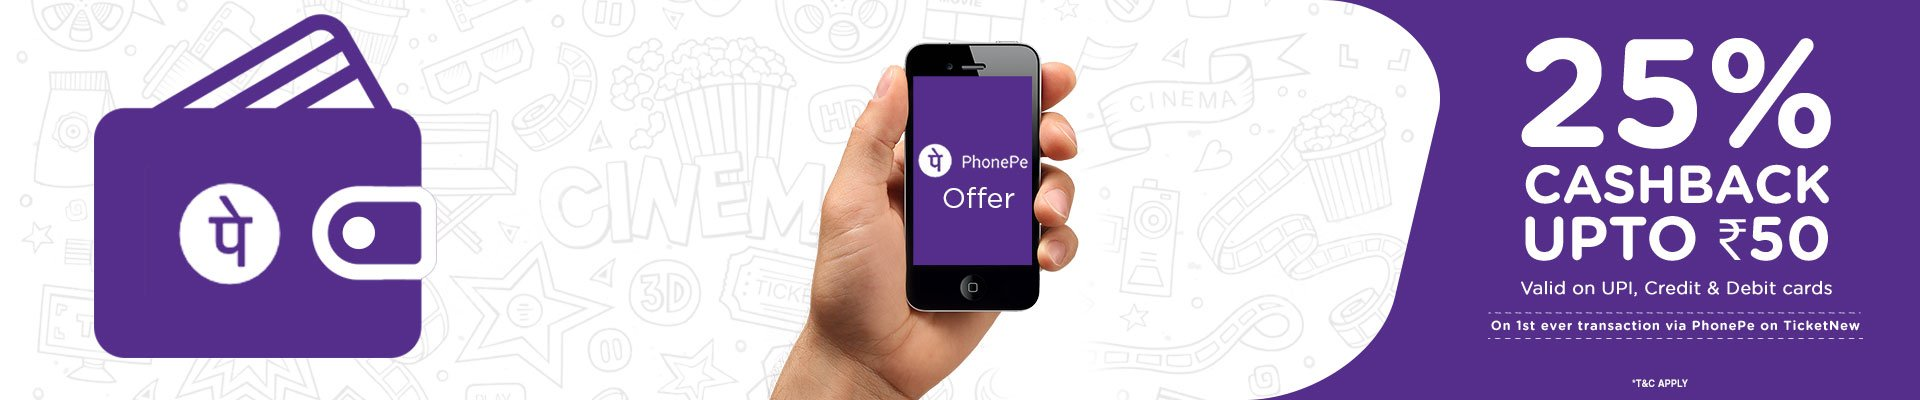 phonepe july banner